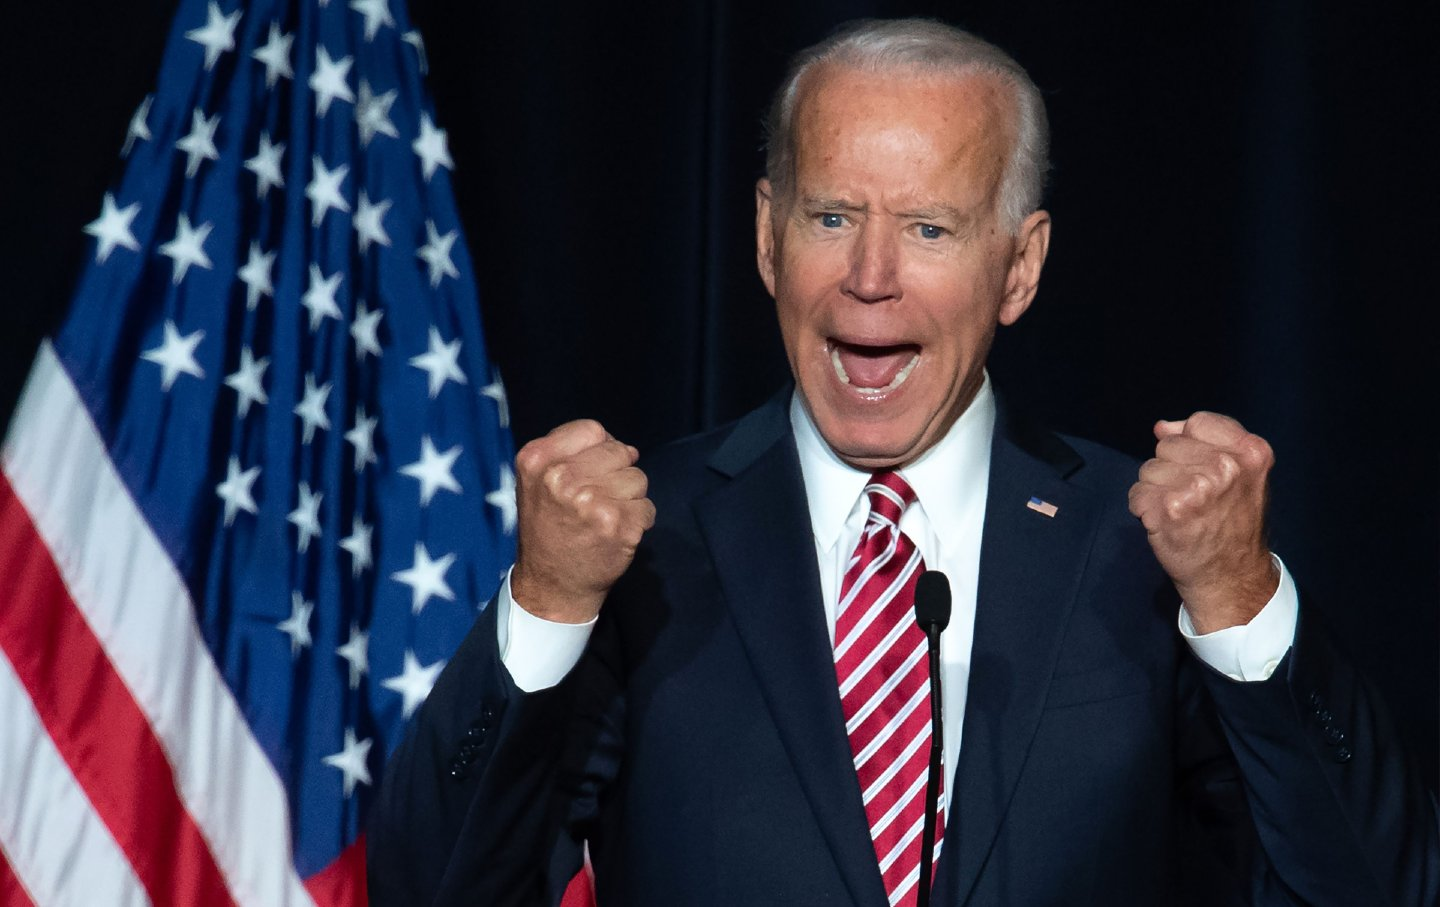 46 and Done: Why Joe Biden Should Be Our Last President